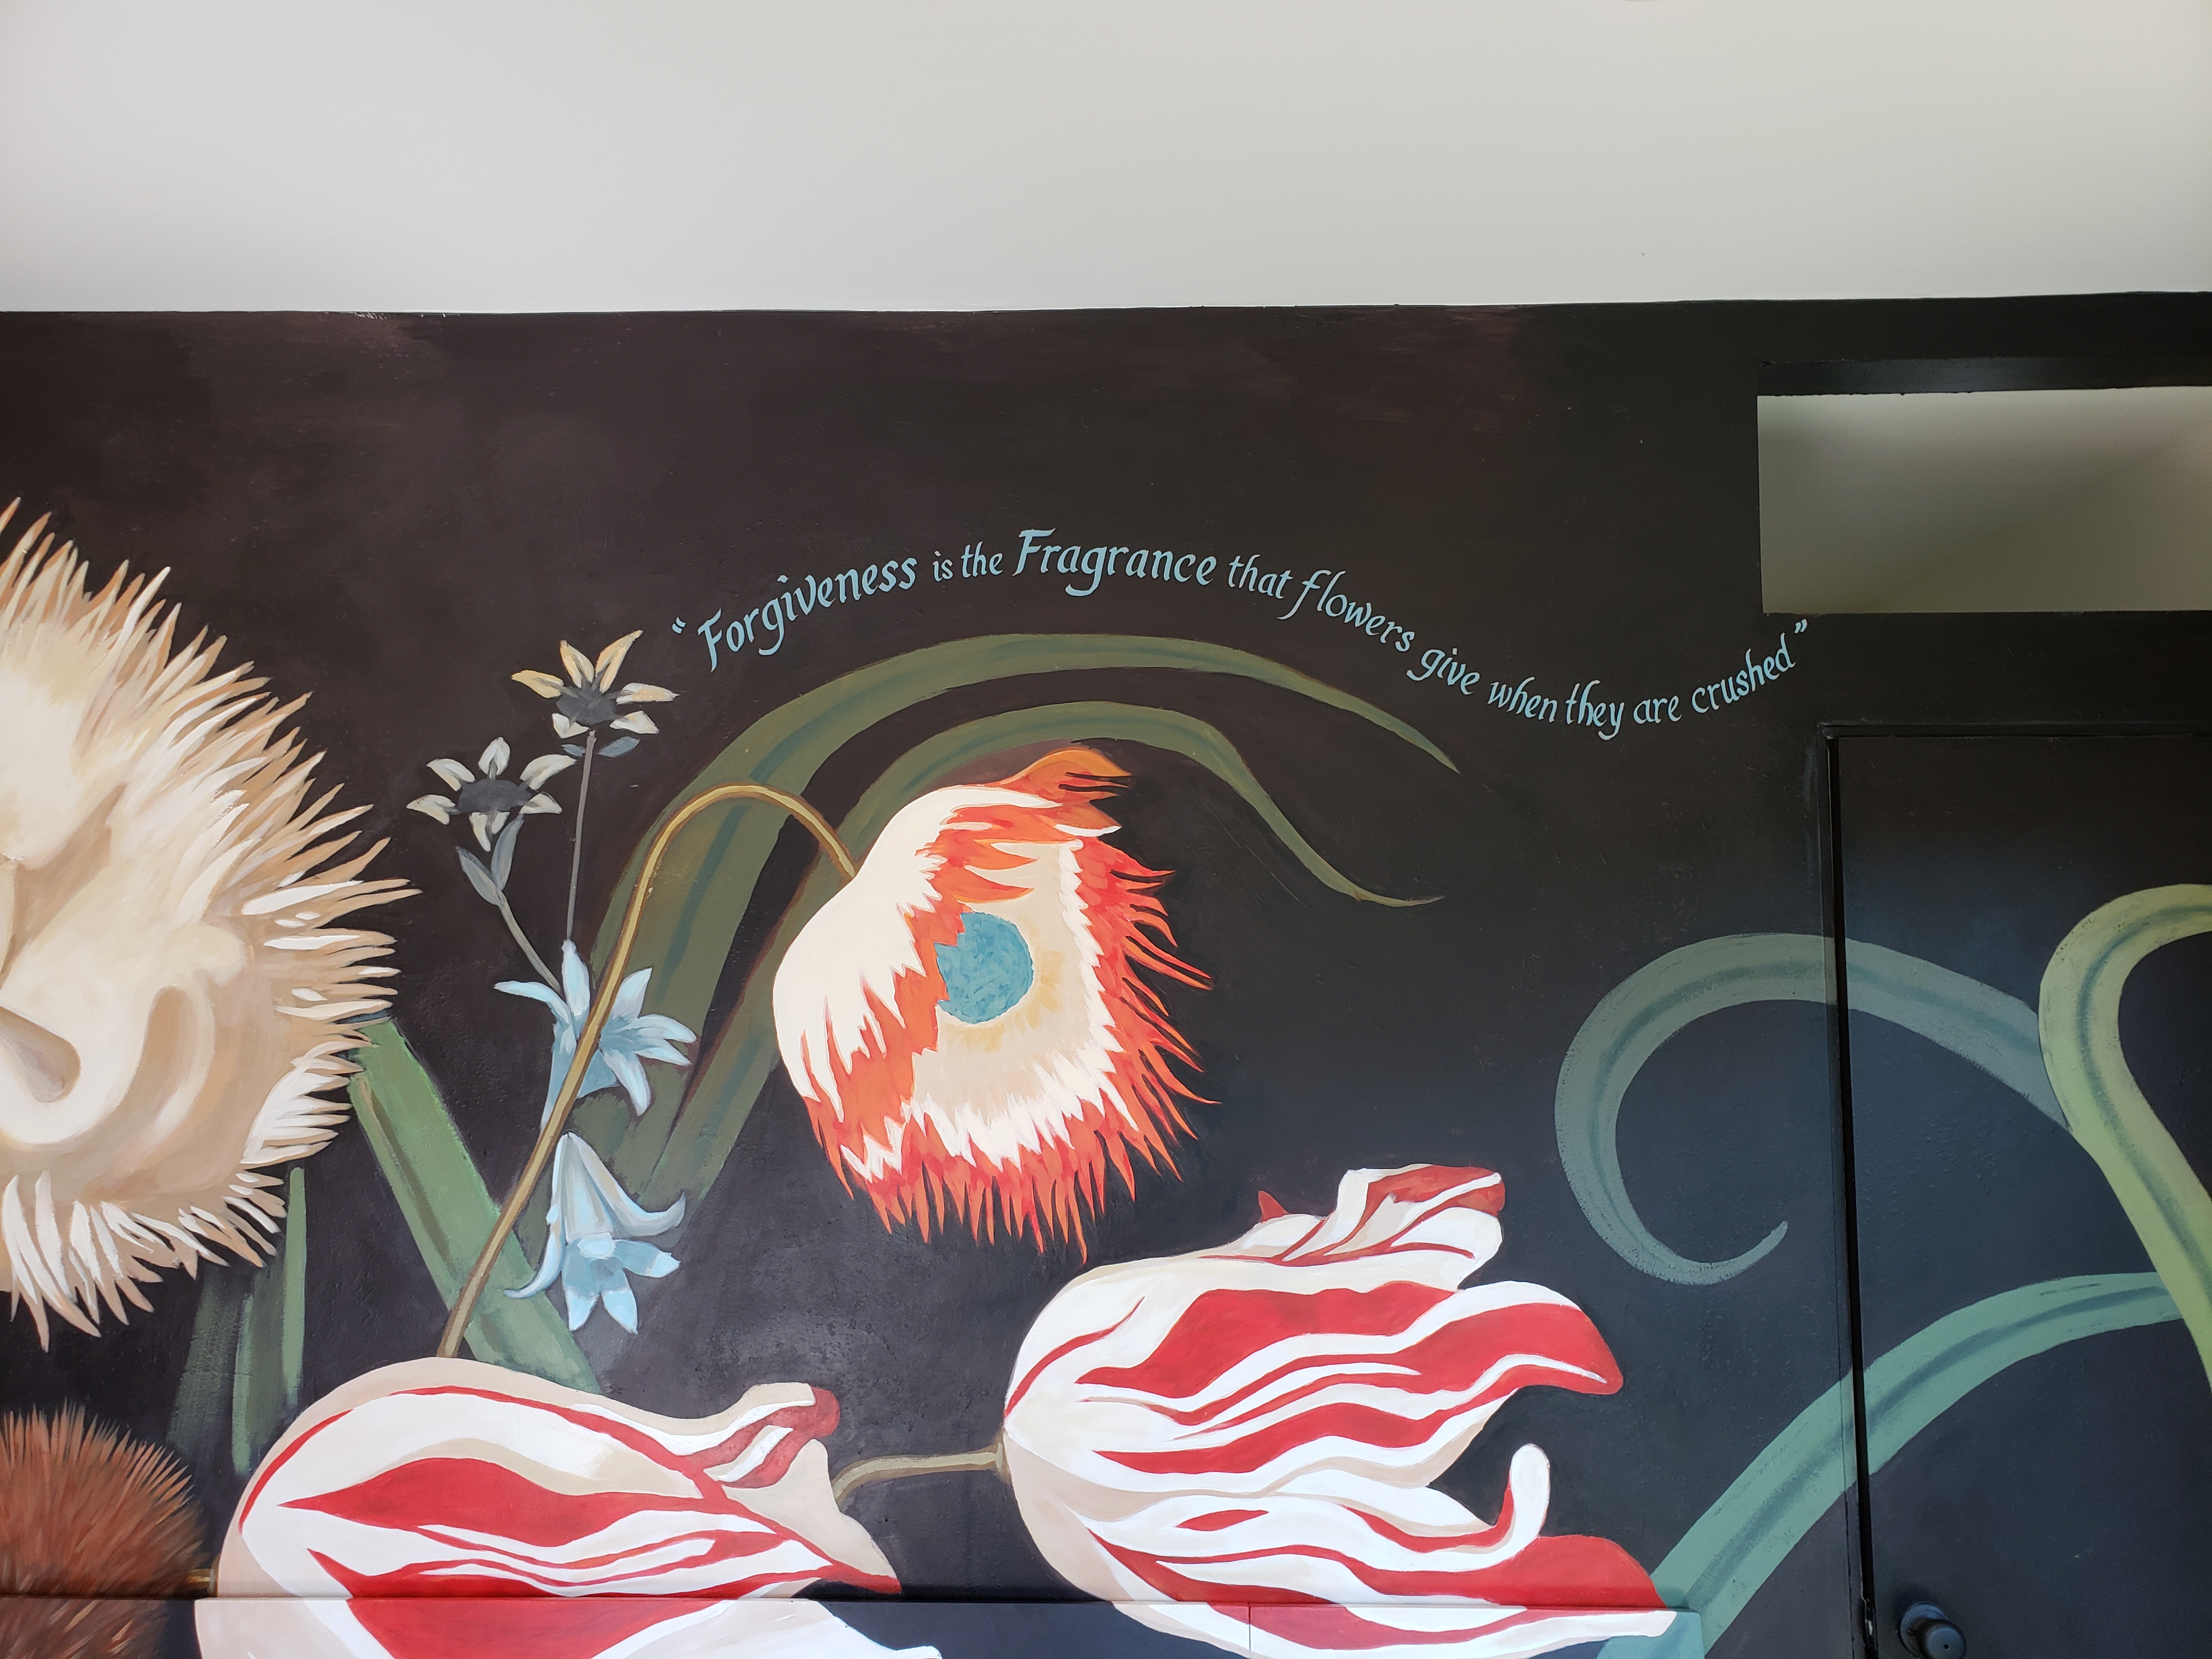 HANDPAINTED MURAL DETAIL CREATED BY PAUL MAXWEL